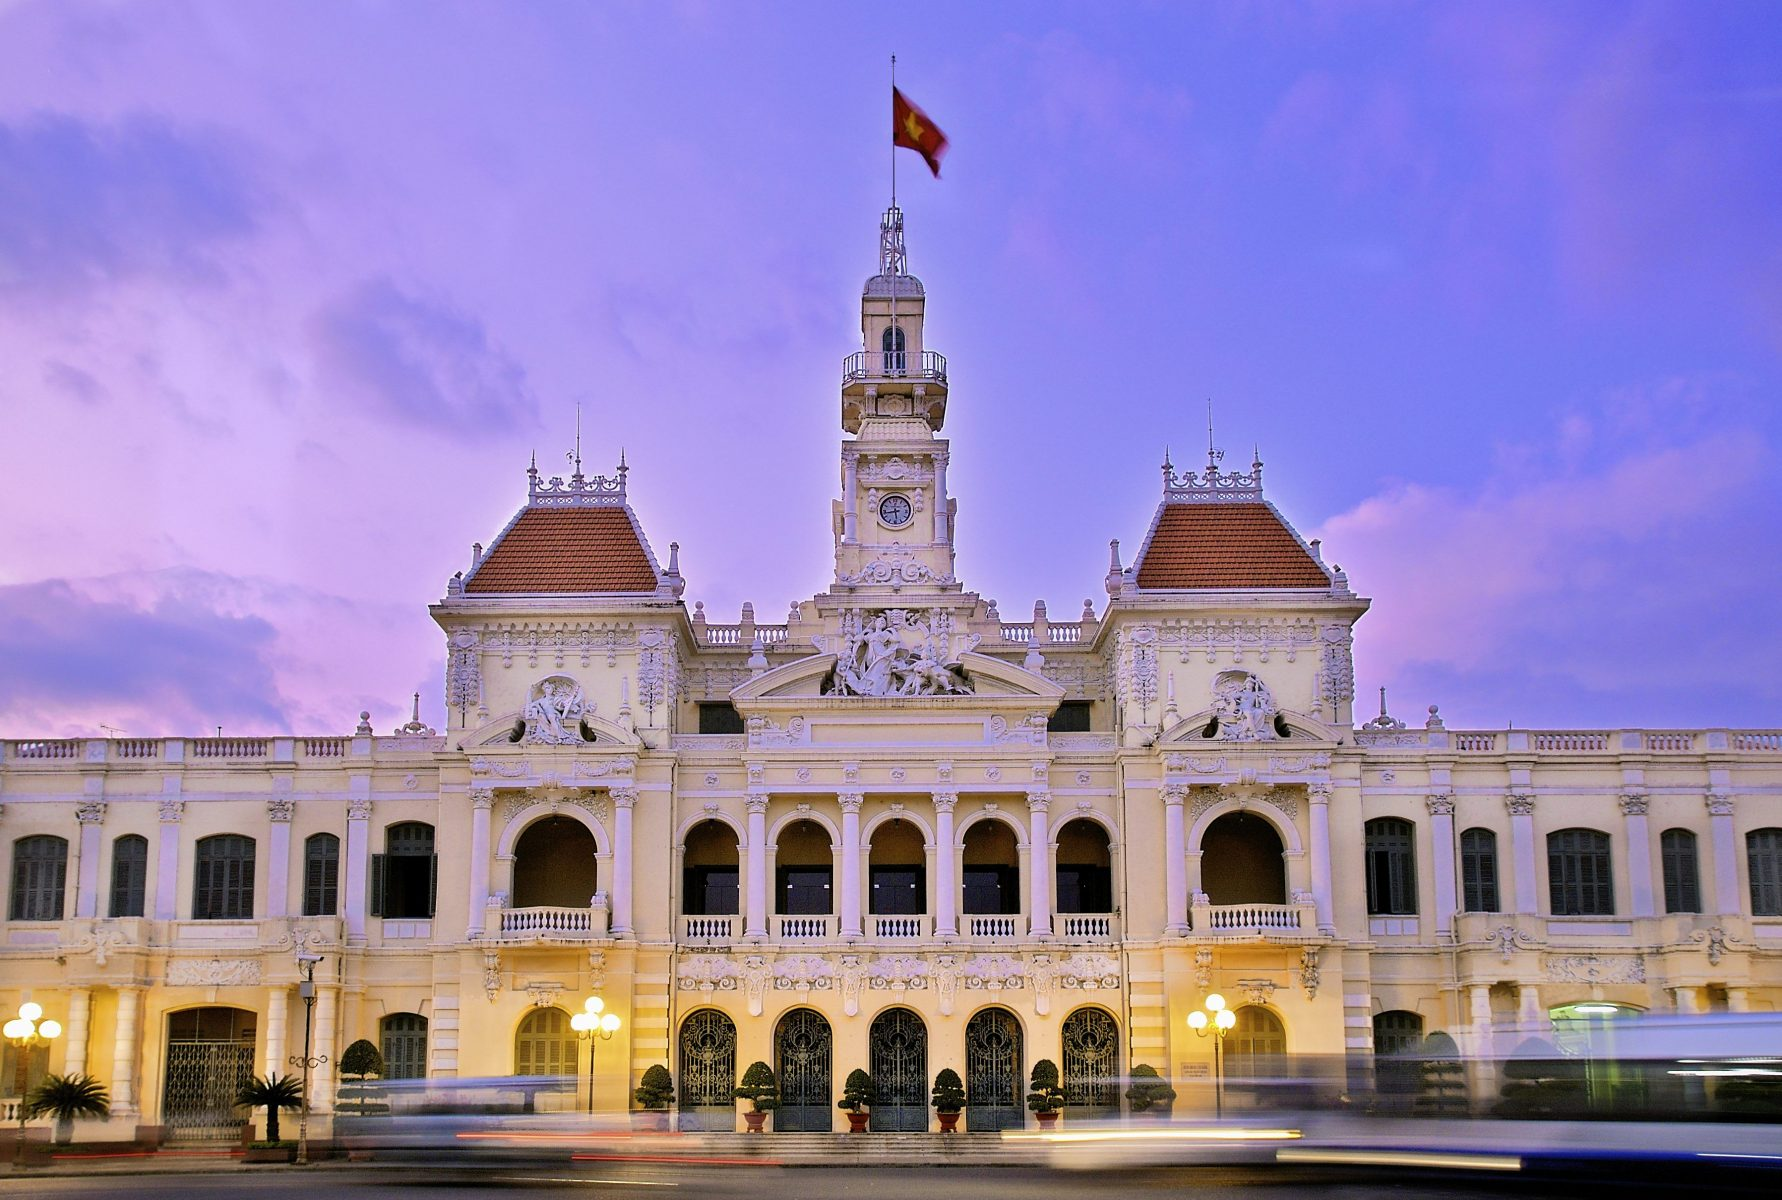 Nope, This Isn't Varsailles in France, it is City Hall in Ho Chi Minh, Vietnam. French Architecture is Prolific Here due to the French Occupation of Saigon (now Ho Chi Minh City) up Until 1955.